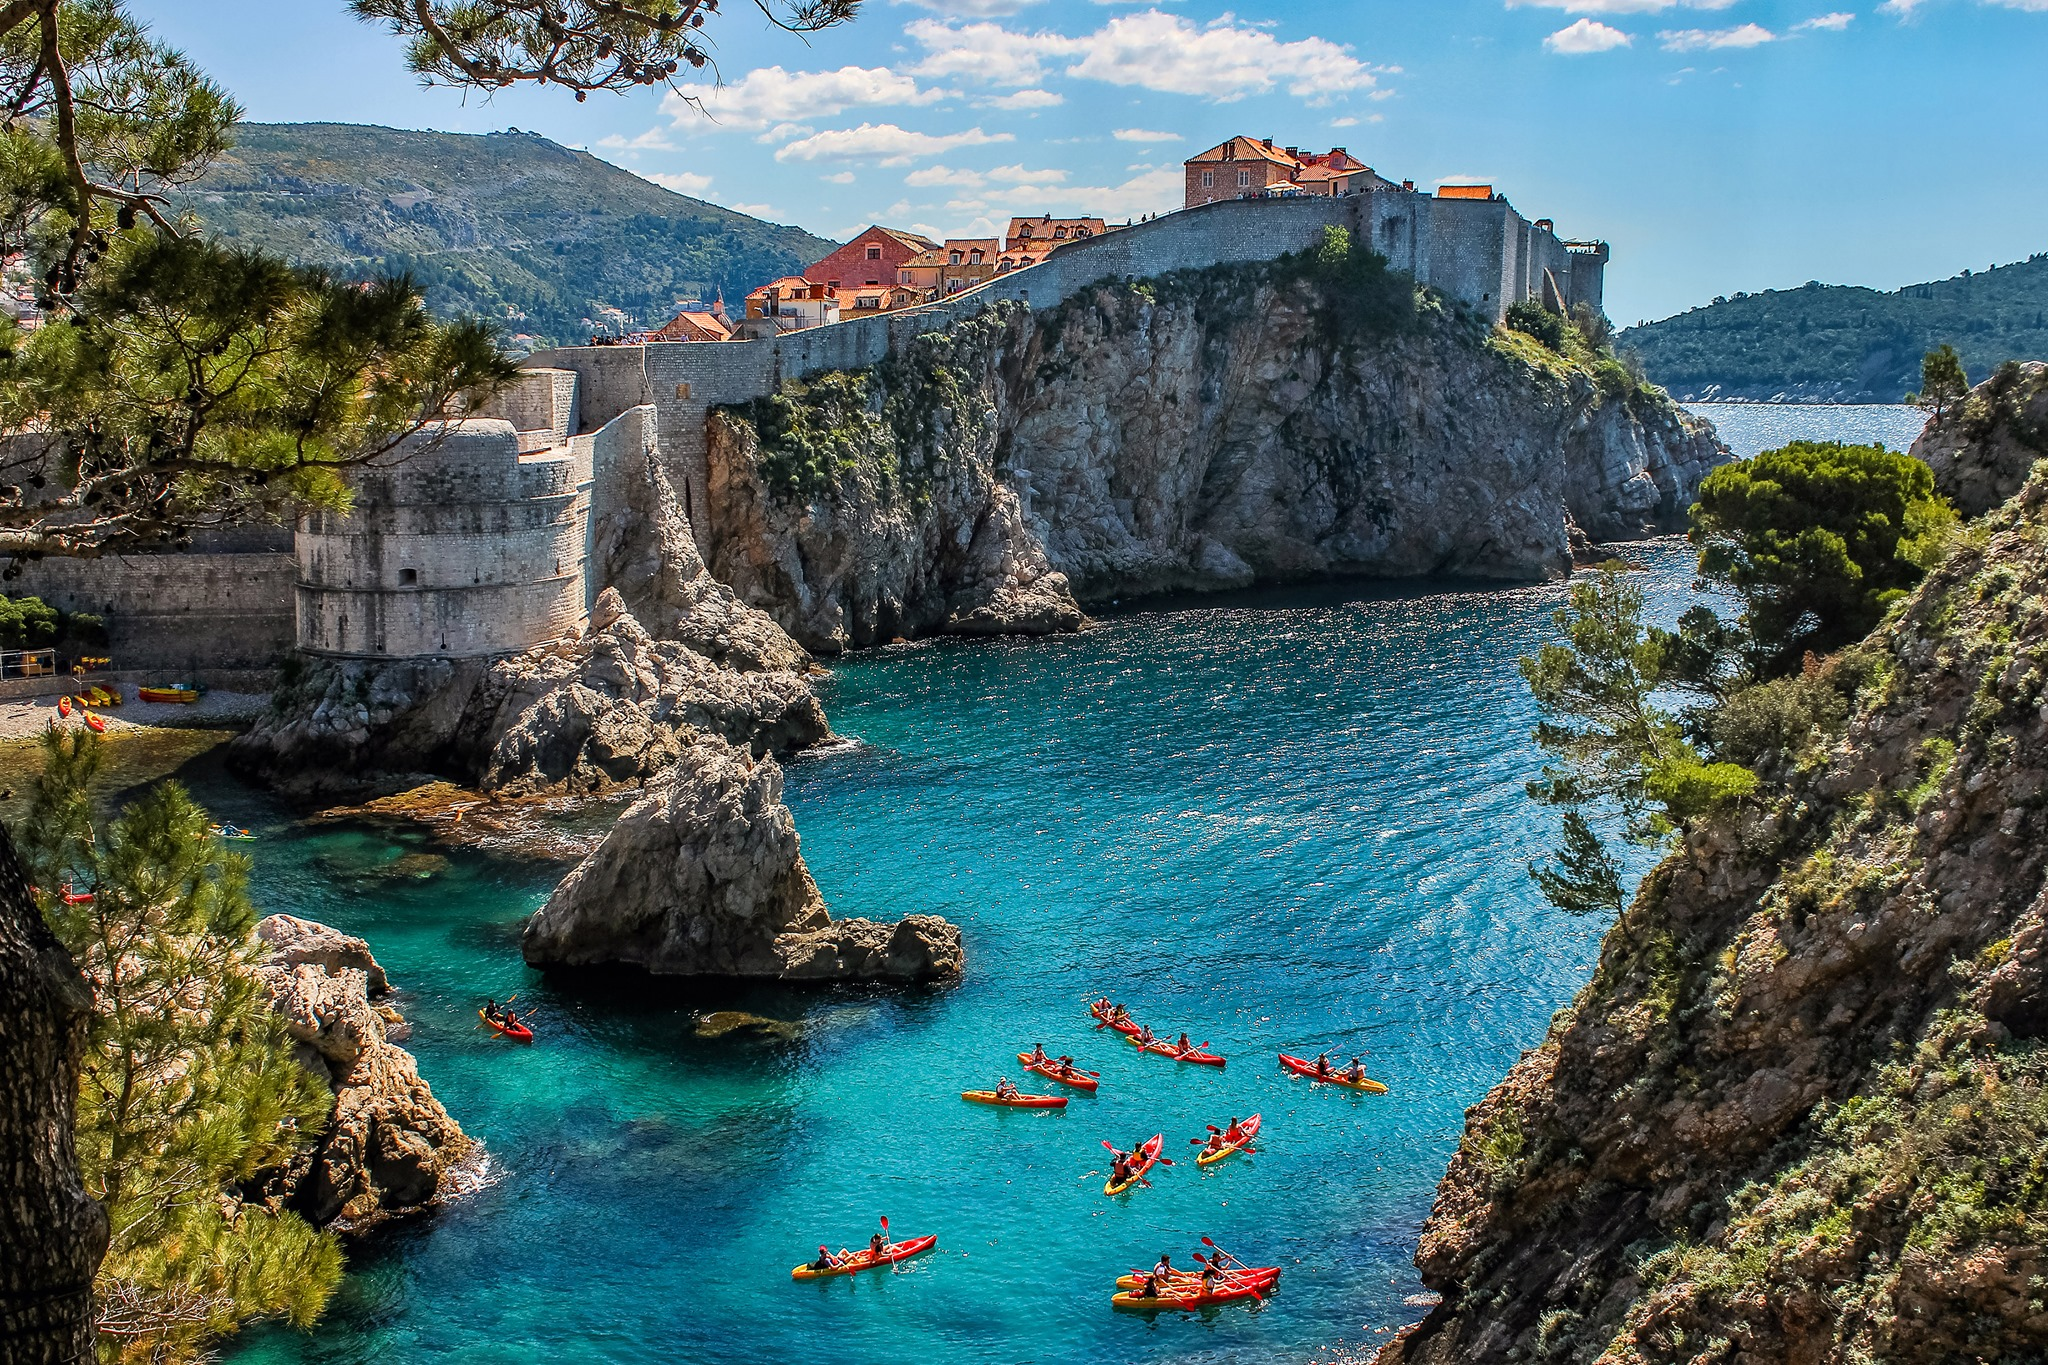 Scenic has released full details of its 2022/2023 Scenic Eclipse Europe and the Mediterranean voyages and land journeys collection.